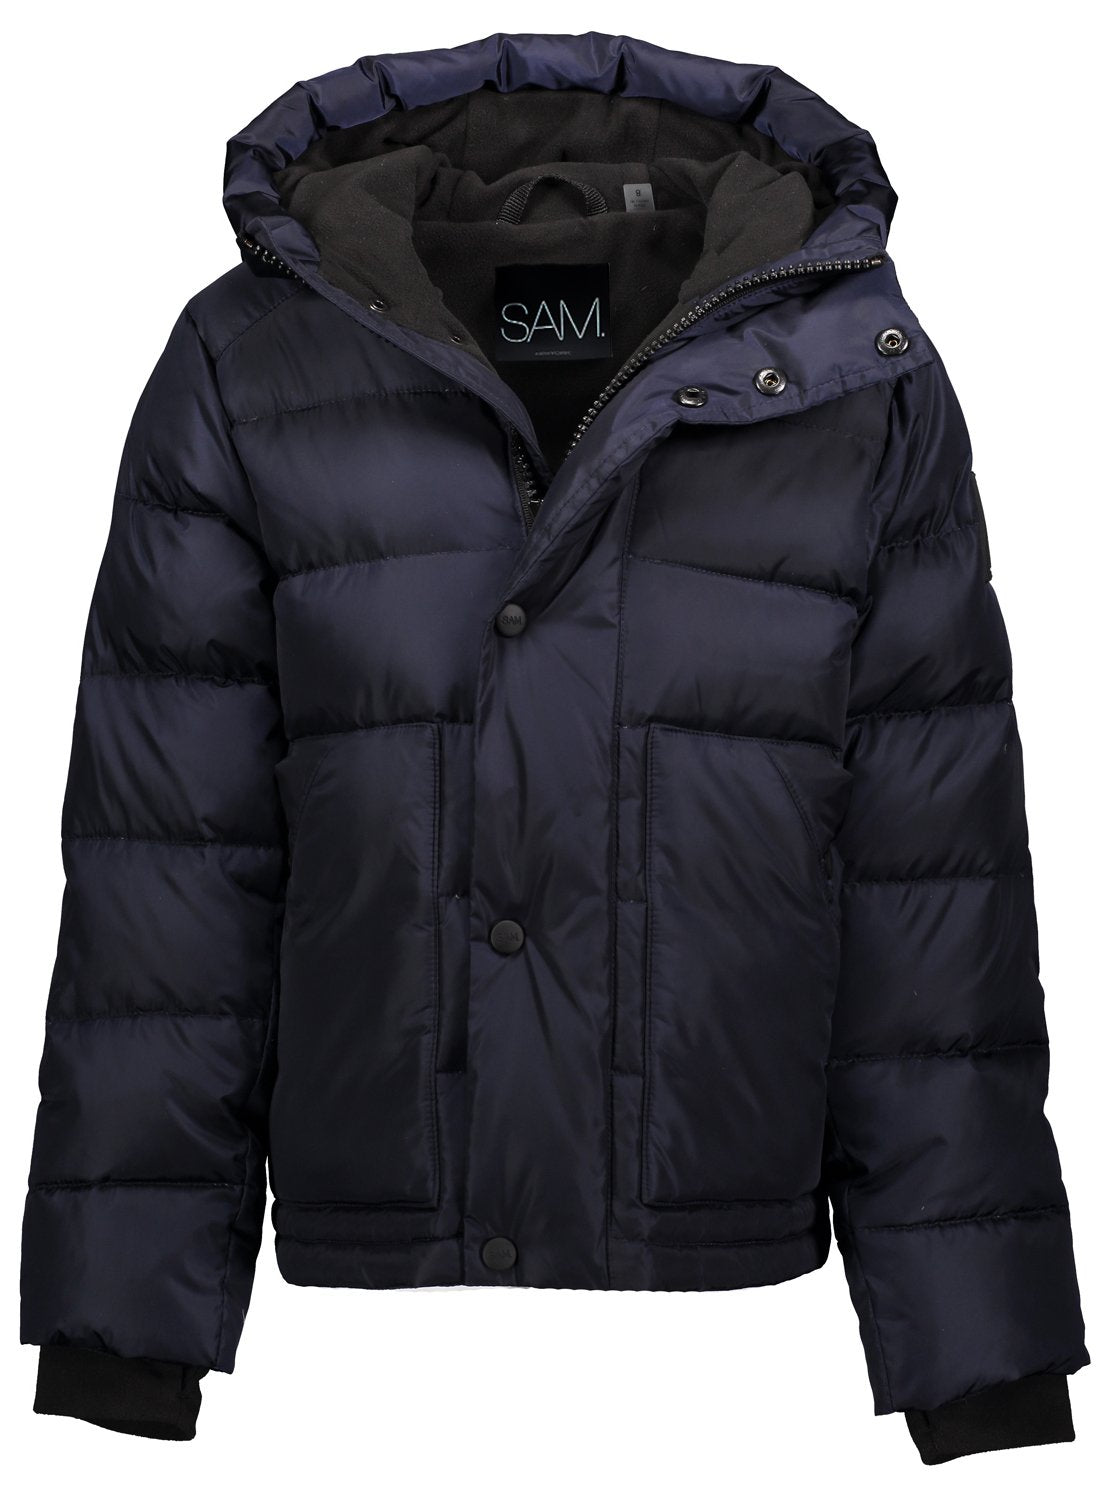 BOYS JACKSON BOYS JACKSON - SAM. New York Sam nyc jacket